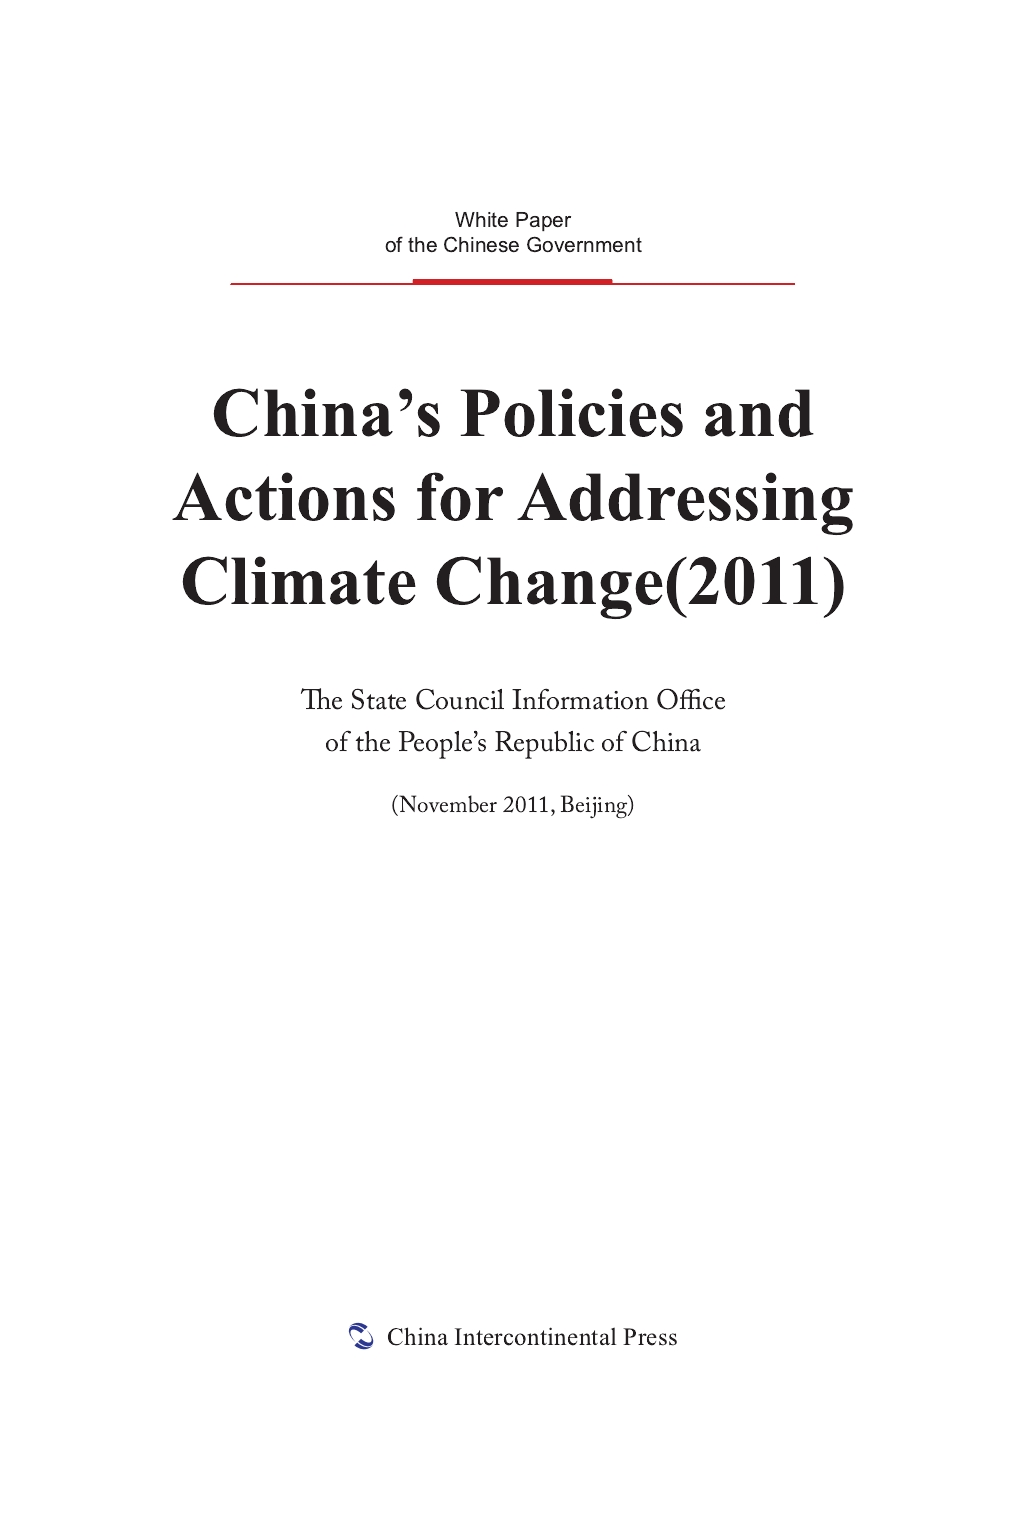 China's Policies and Actions for Addressing Climate Change(2011)